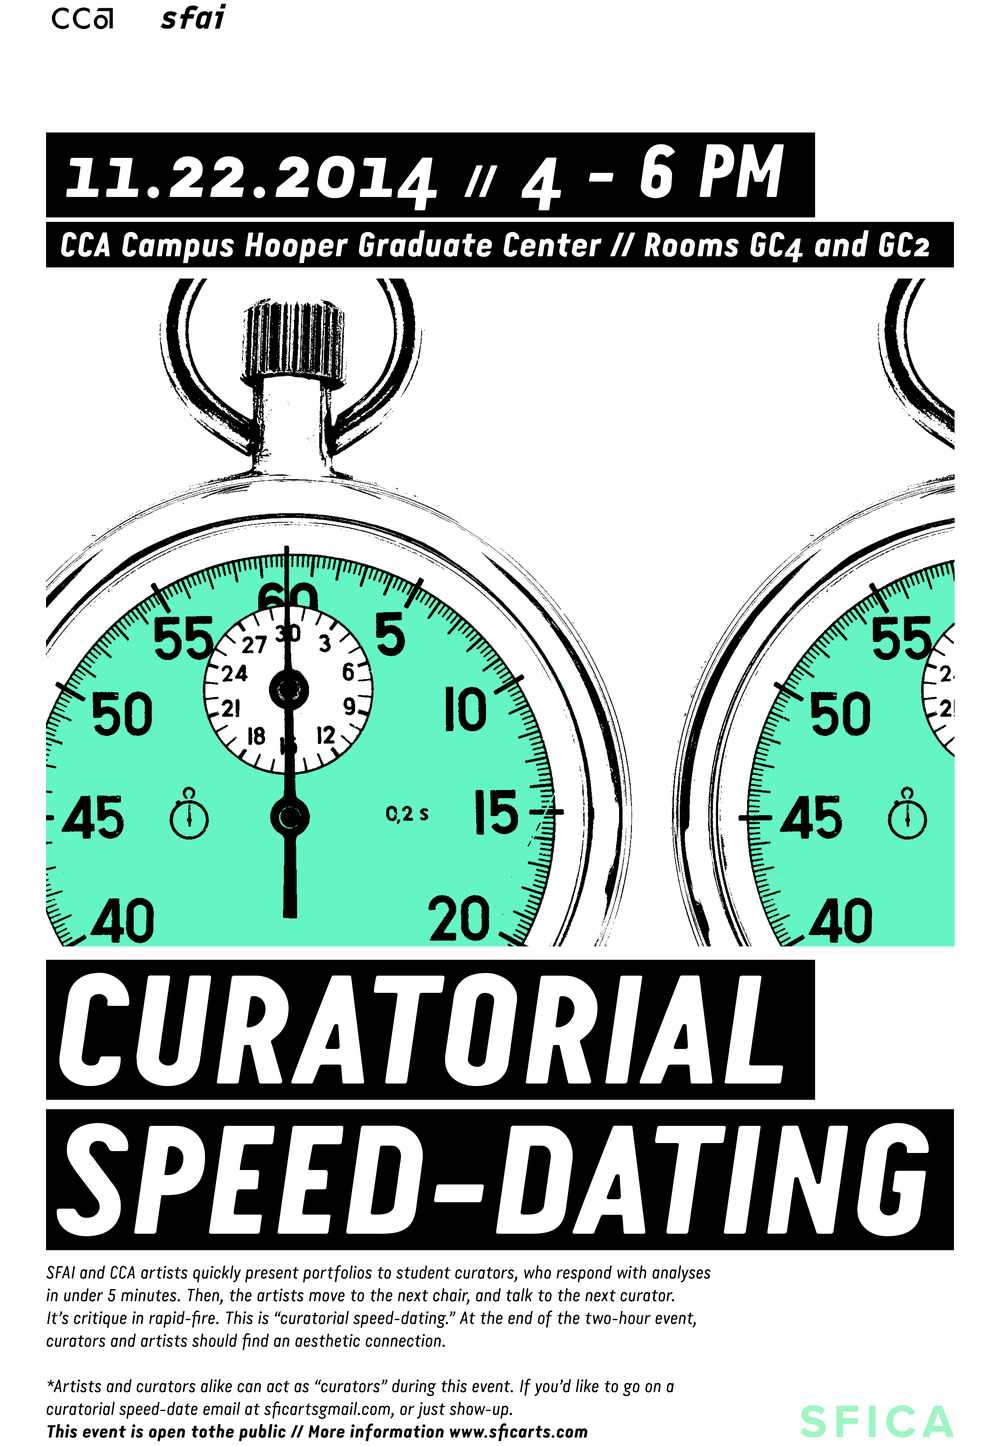 CuratorialSpeedDating.jpg